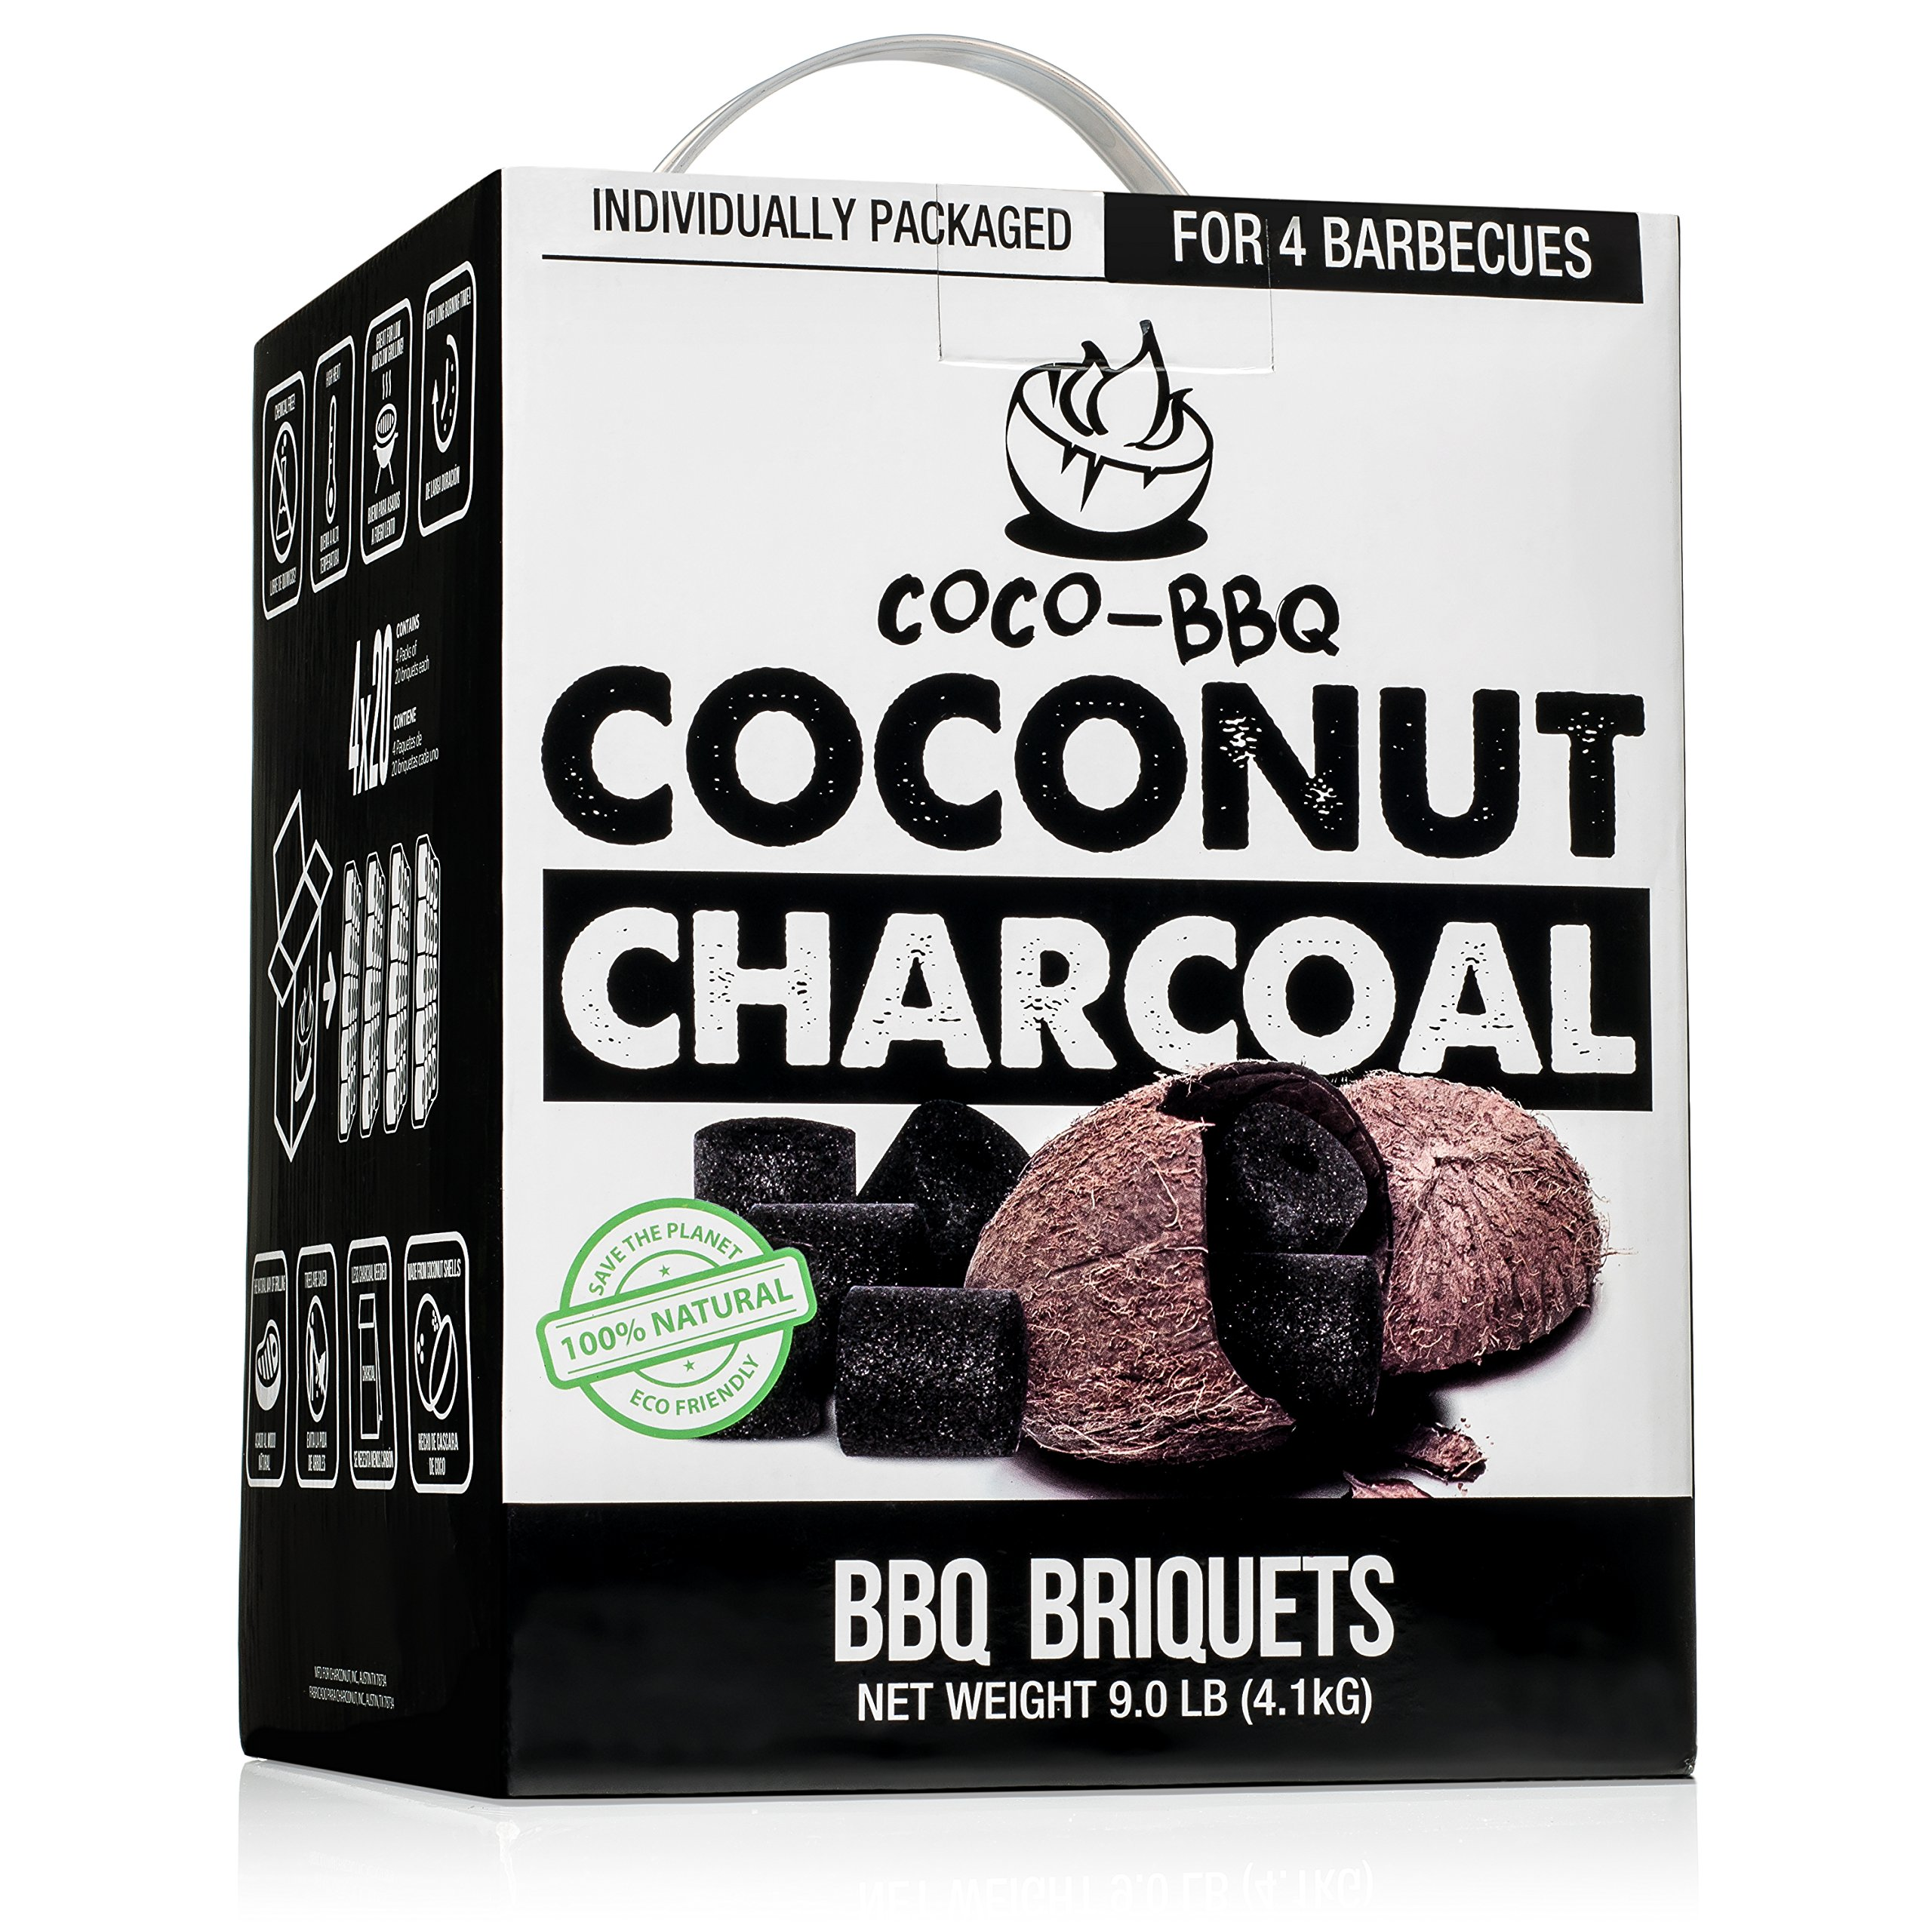 COCO-BBQ Eco-Friendly Barbecue Charcoal Made from Coconut Shells for Low and Slow Grilling by COCO-BBQ (Image #1)